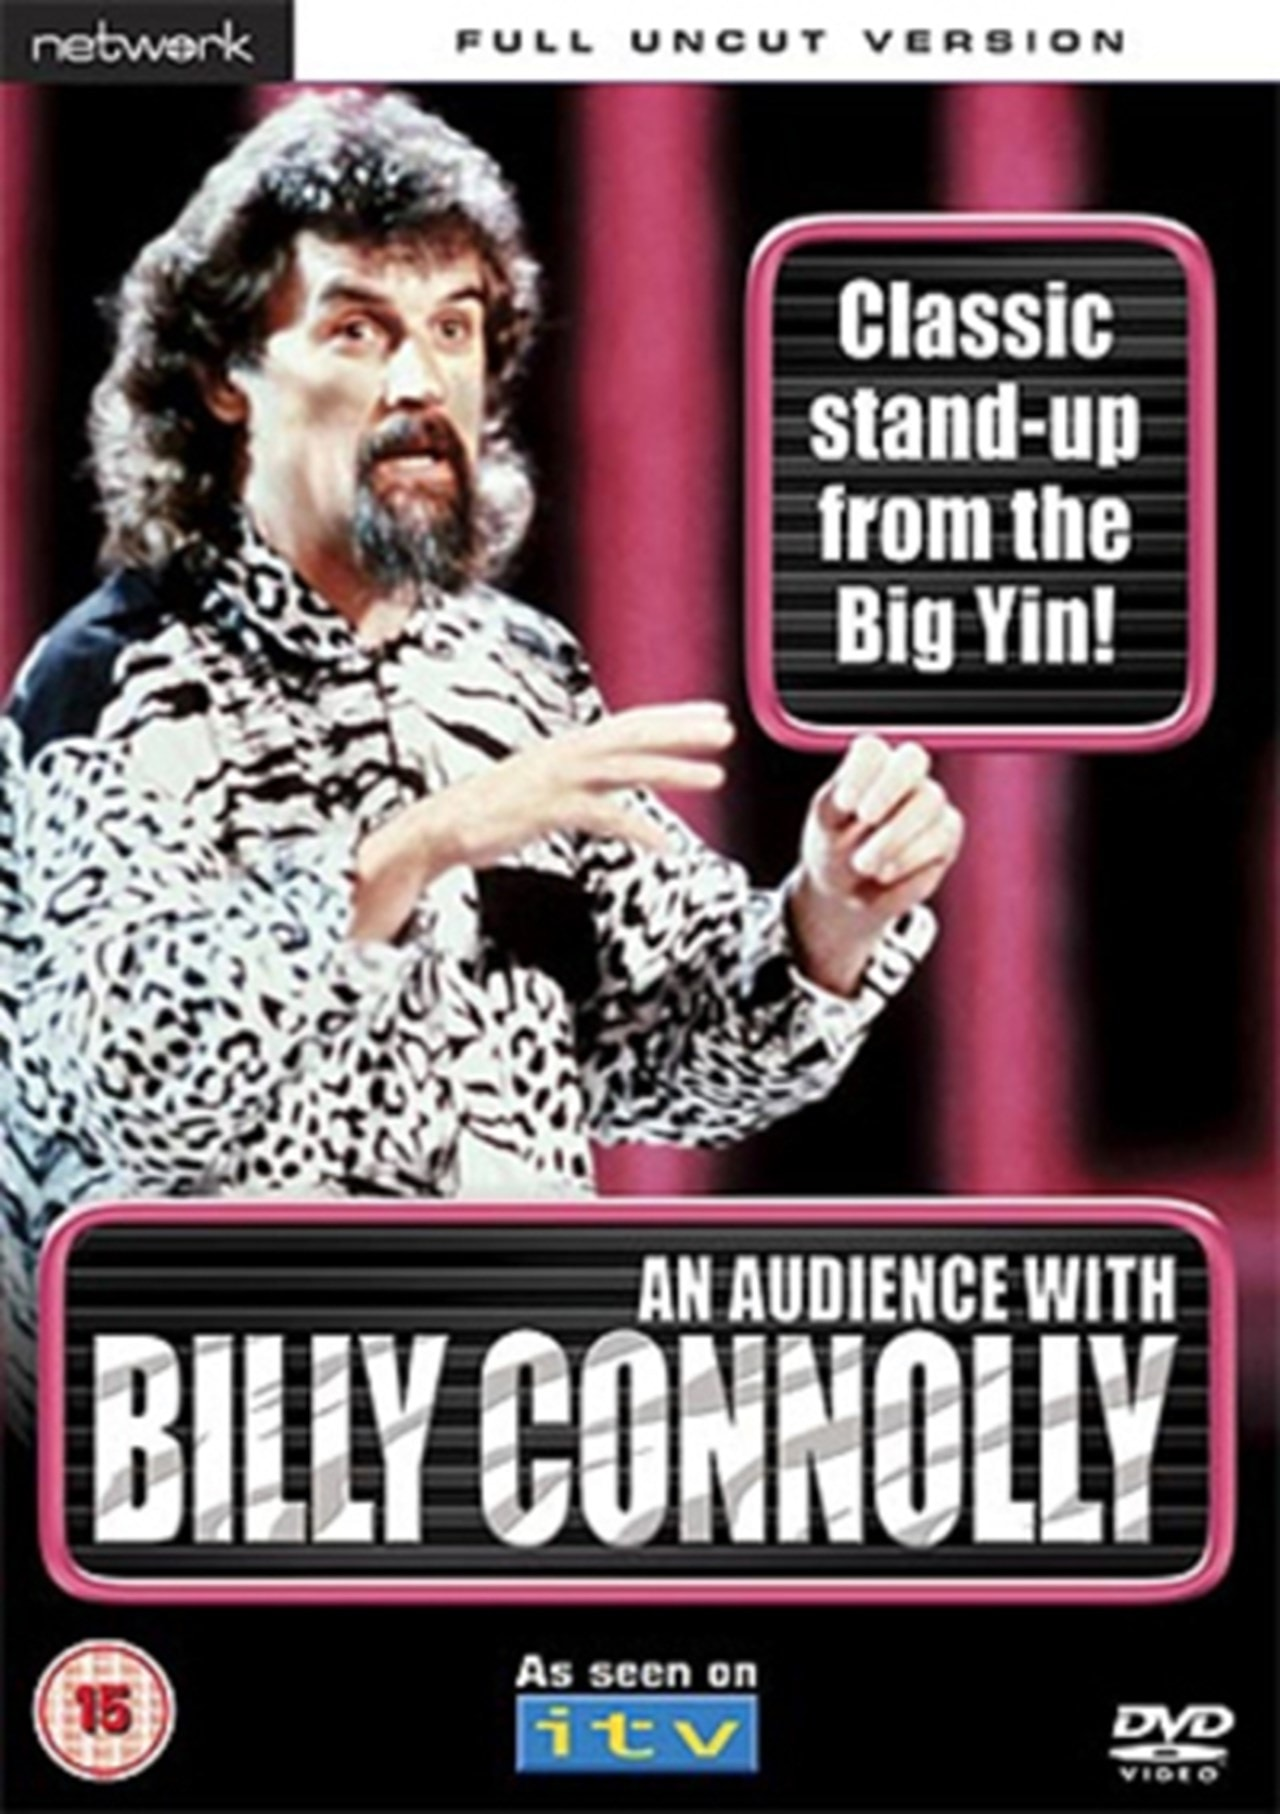 Billy Connolly: An Audience with Billy Connolly - 1